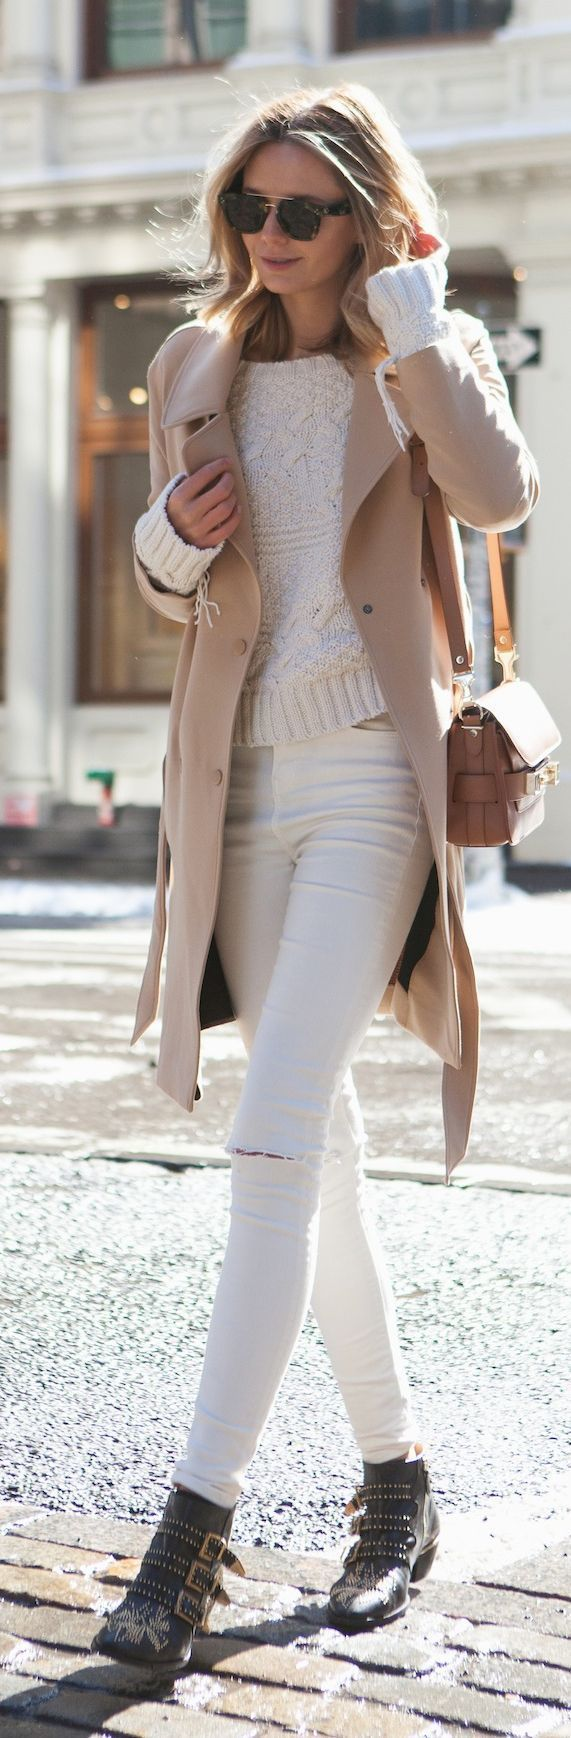 Wear a camel coat with white ripped skinny jeans to effortlessly deal with whatever this day throws at you. Black studded leather booties are a good choice to complete the look.   Shop this look on Lookastic: https://lookastic.com/women/looks/coat-cable-sweater-skinny-jeans/15361   — White Cable Sweater  — Camel Coat  — Tan Leather Crossbody Bag  — White Ripped Skinny Jeans  — Black Studded Leather Ankle Boots